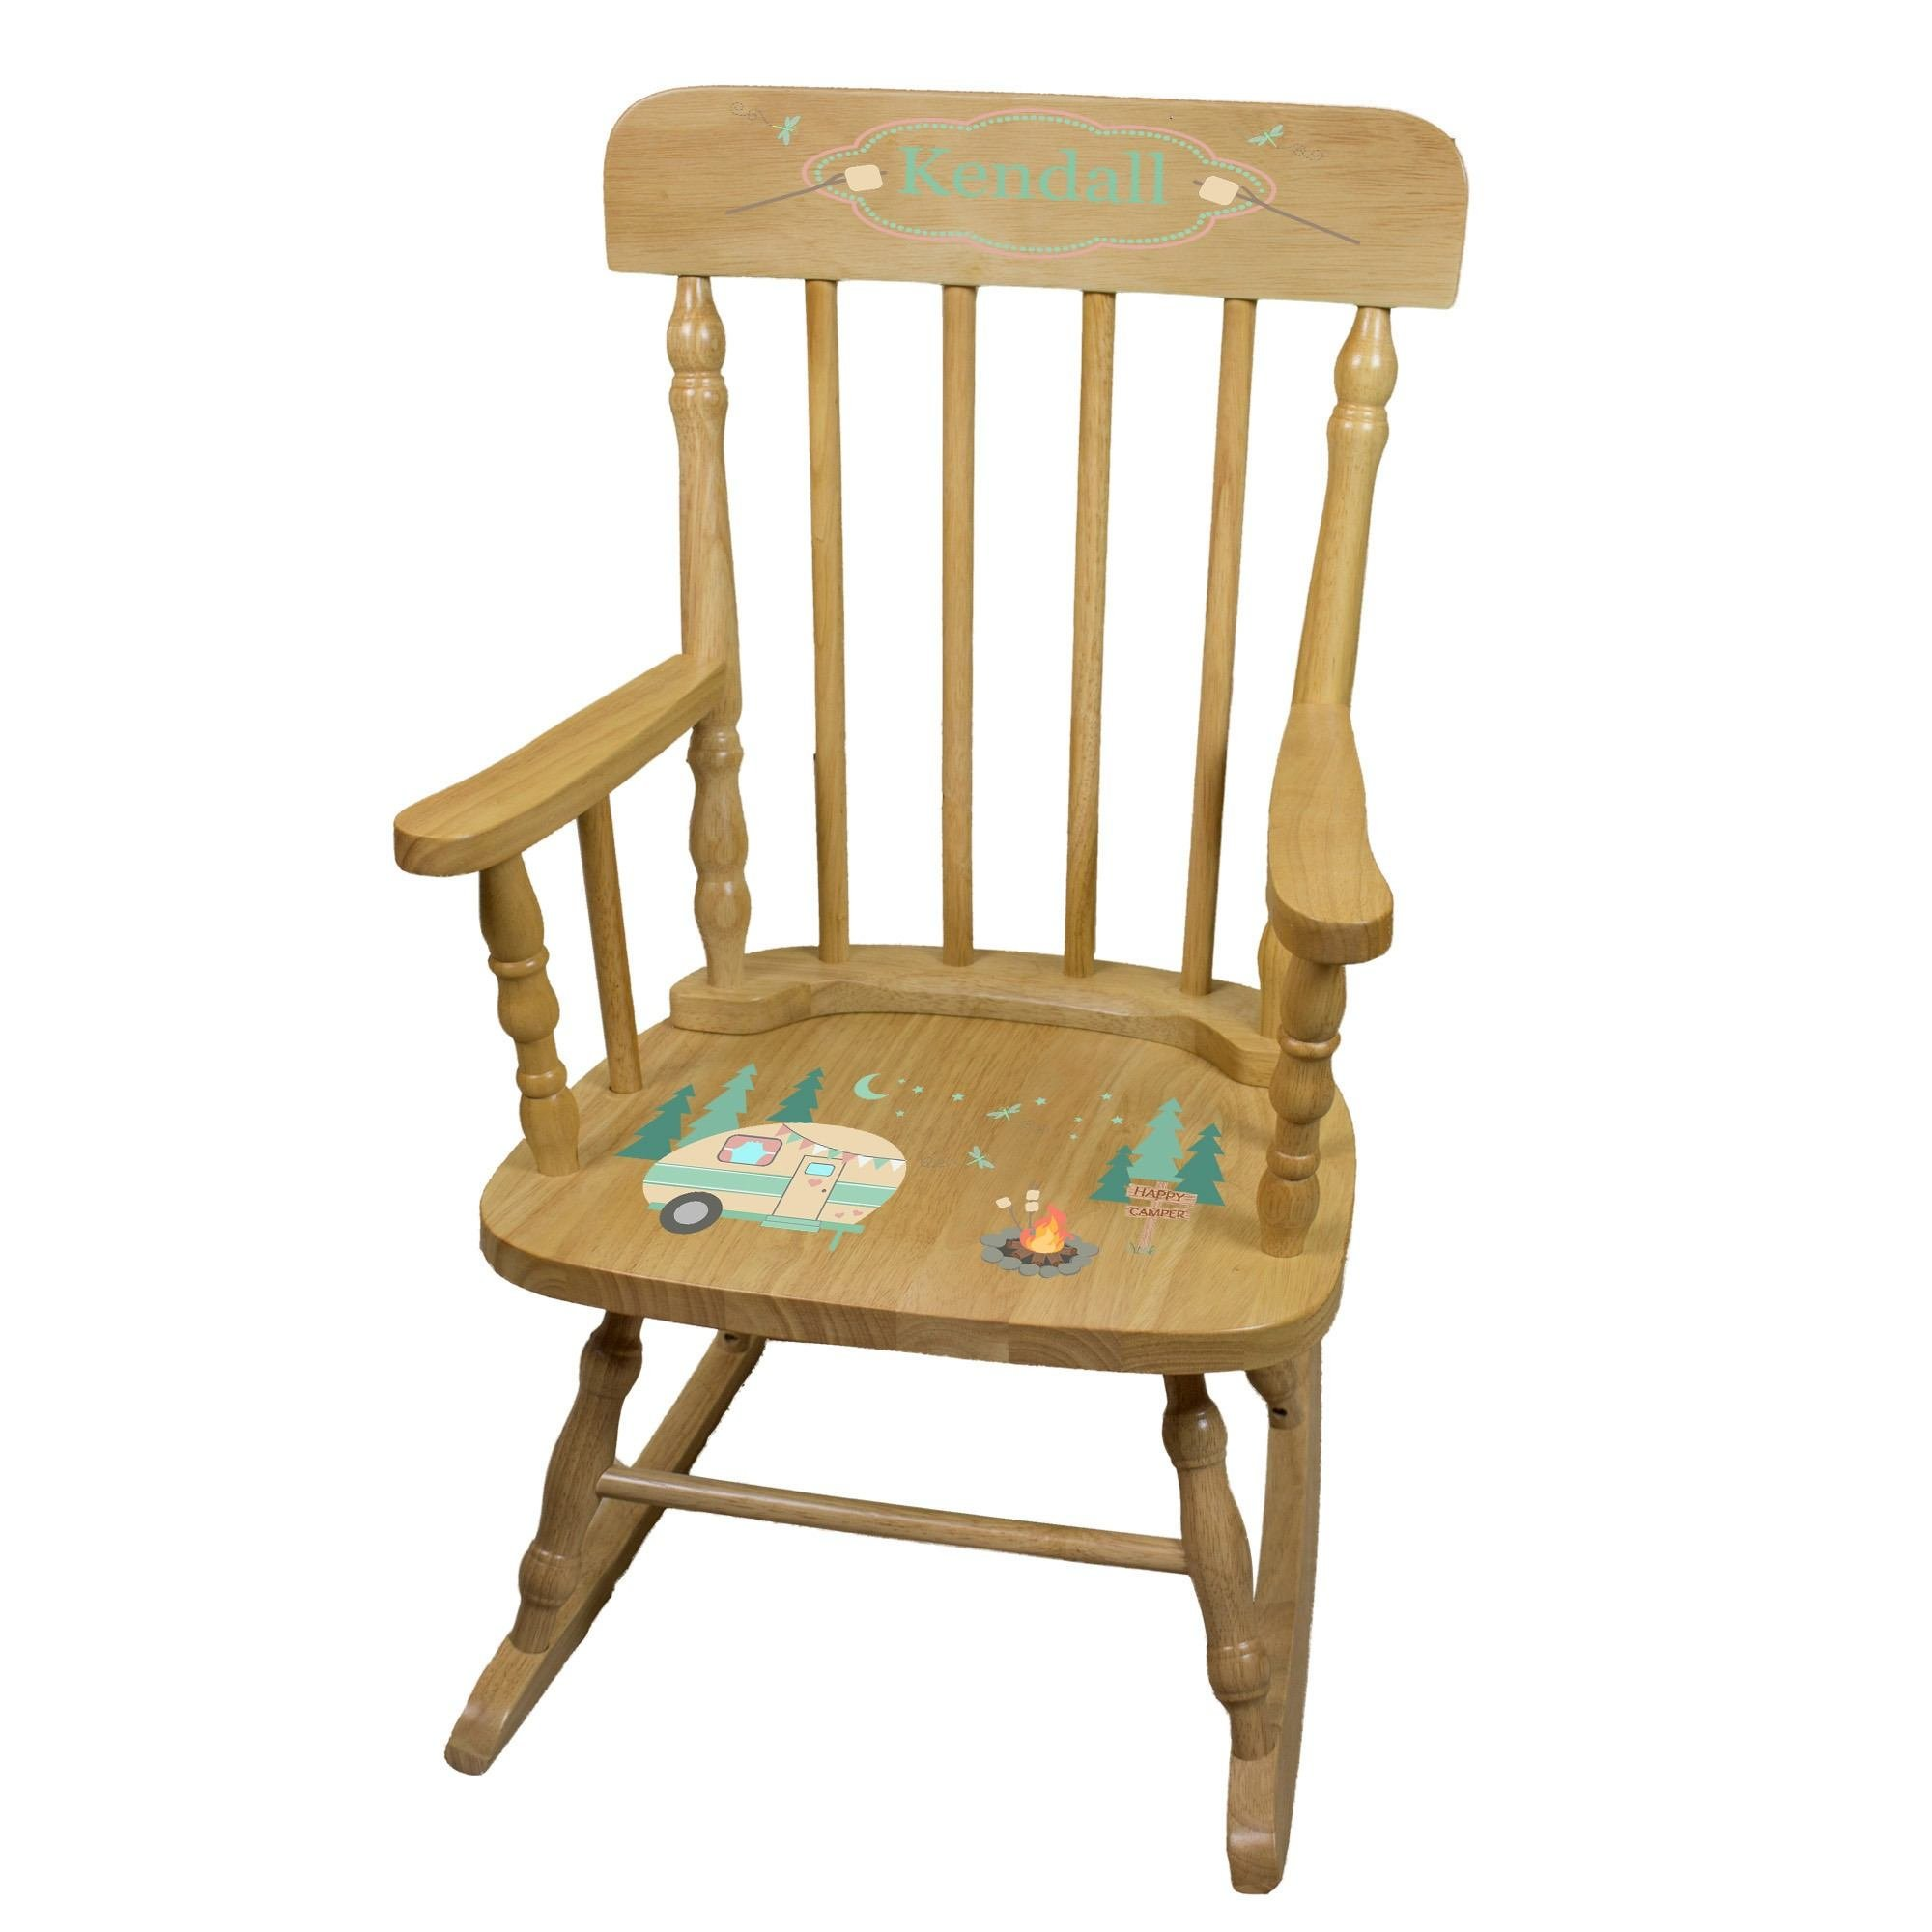 MyBambino Personalized Camp Smores Natural Wooden Childrens Rocking Chair